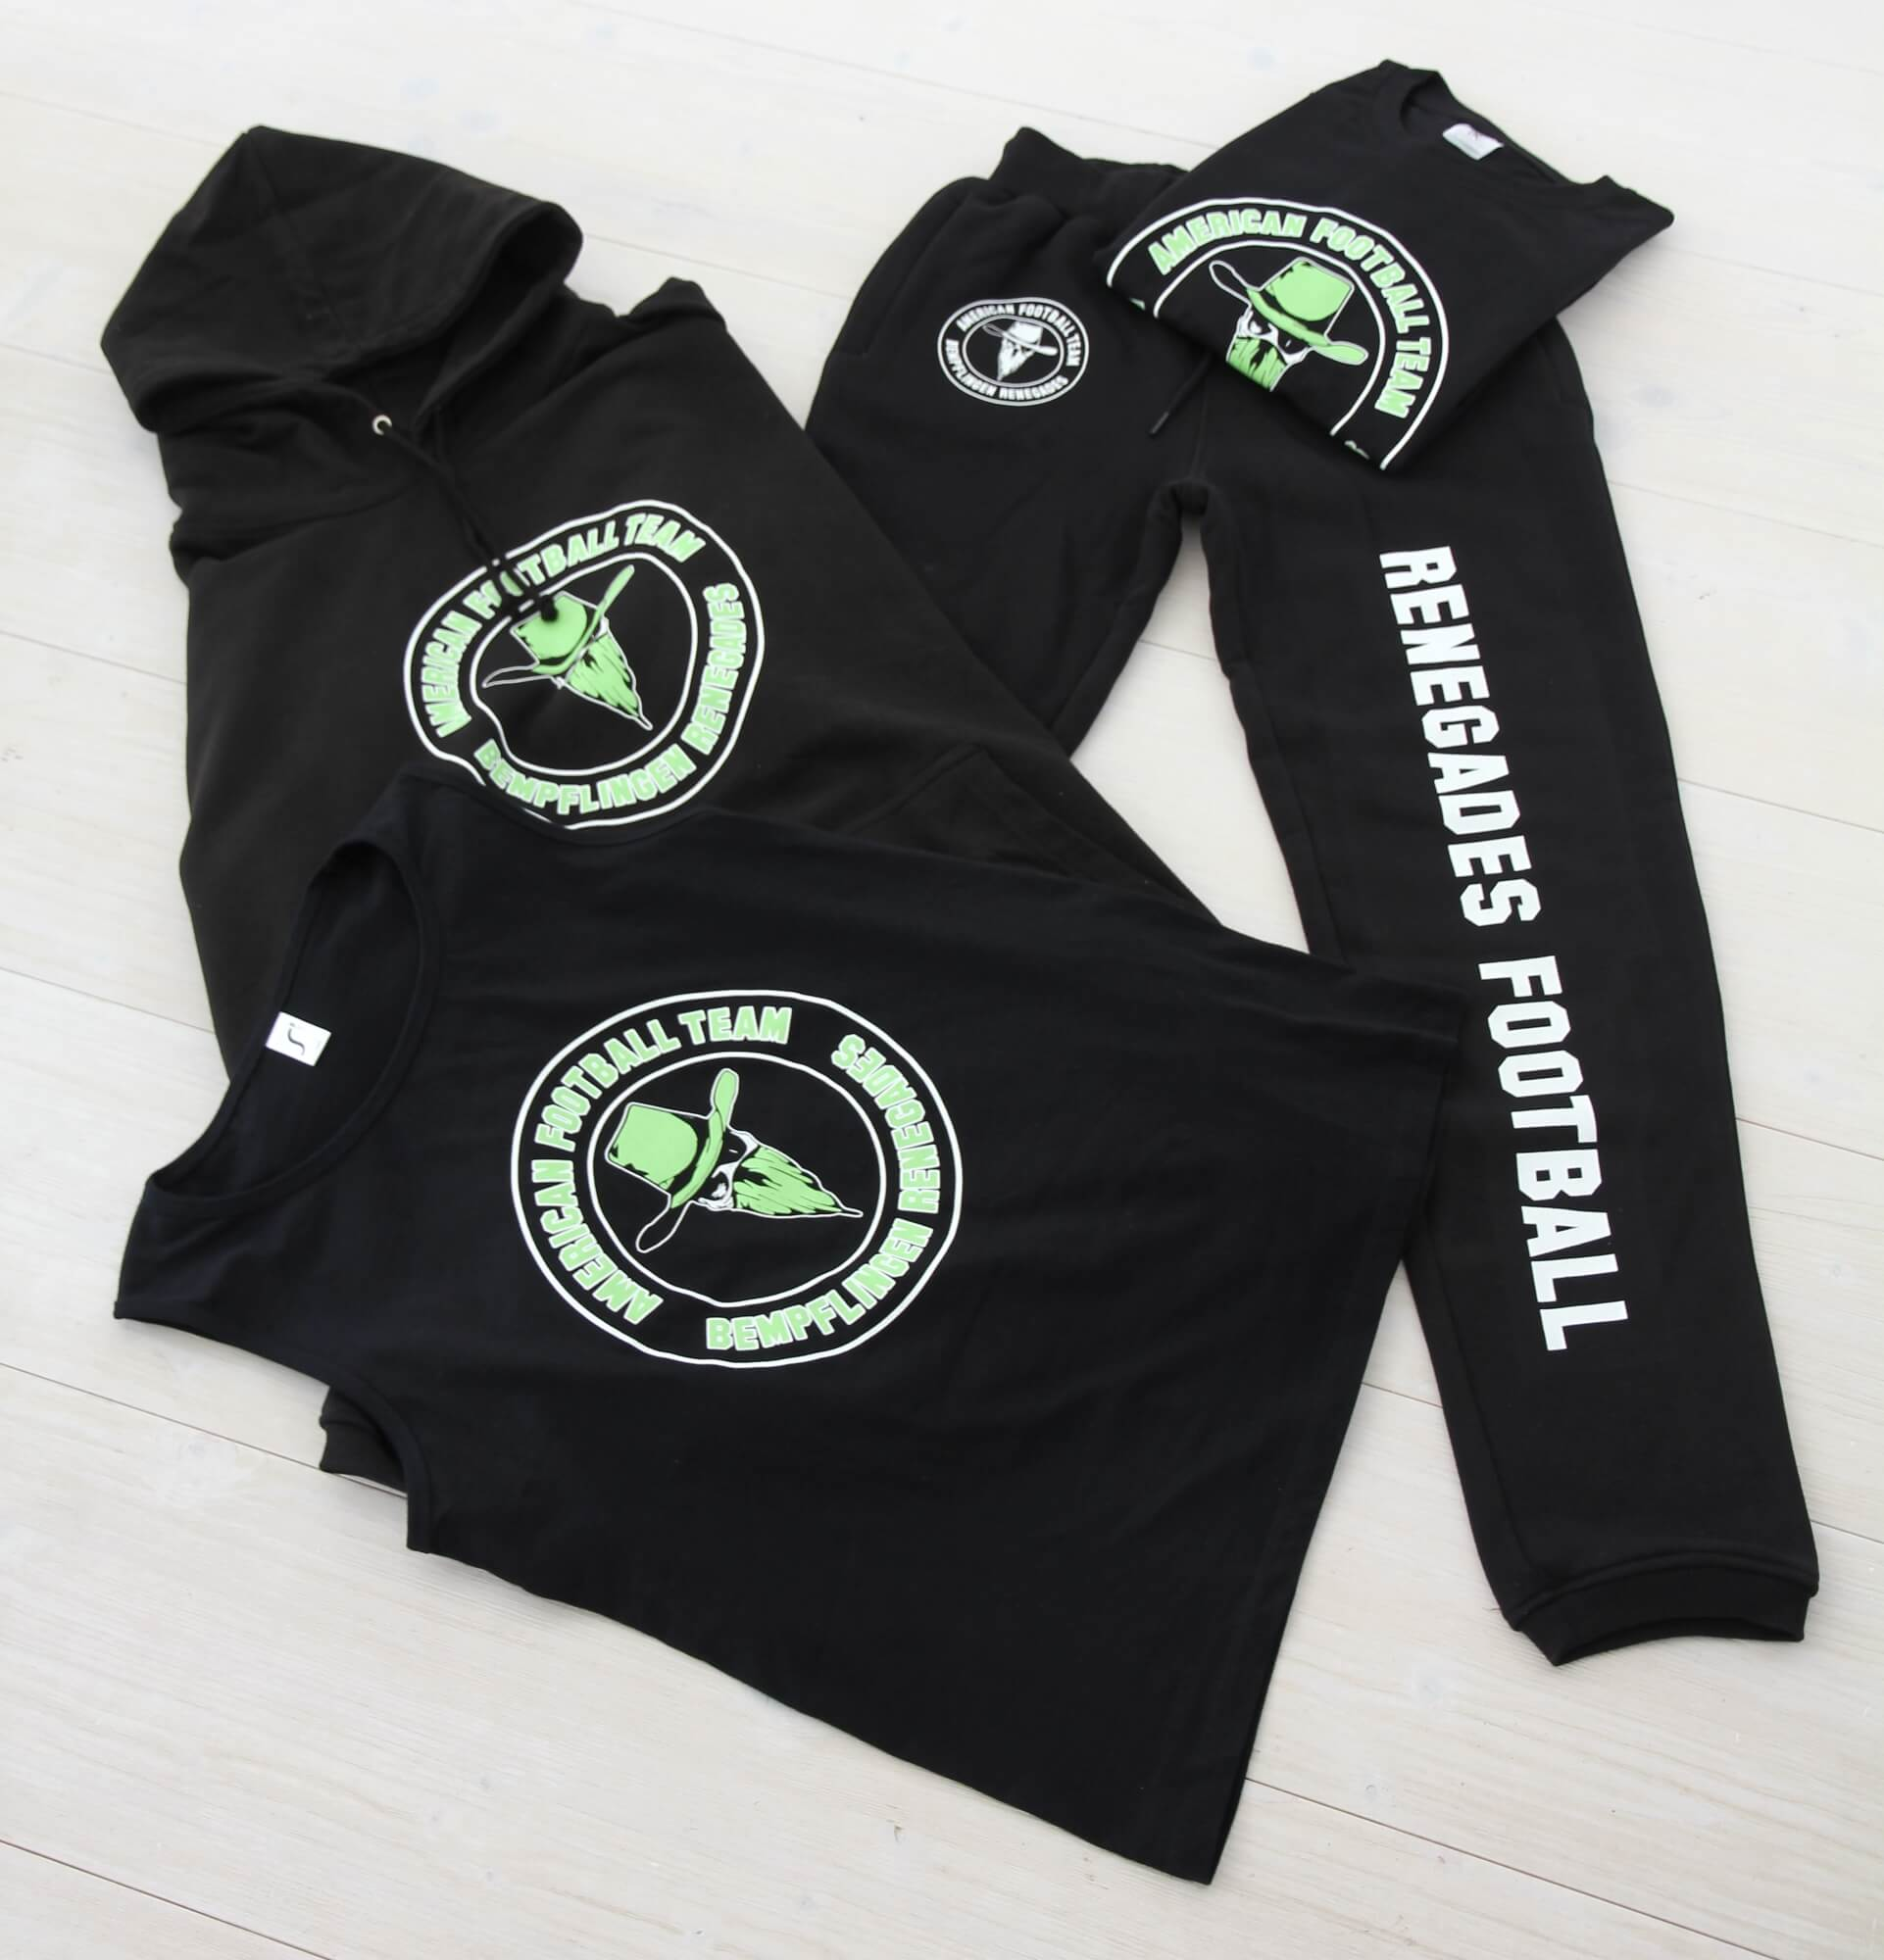 Teamwear-Kollektion Bempflingen Renegades (Football)